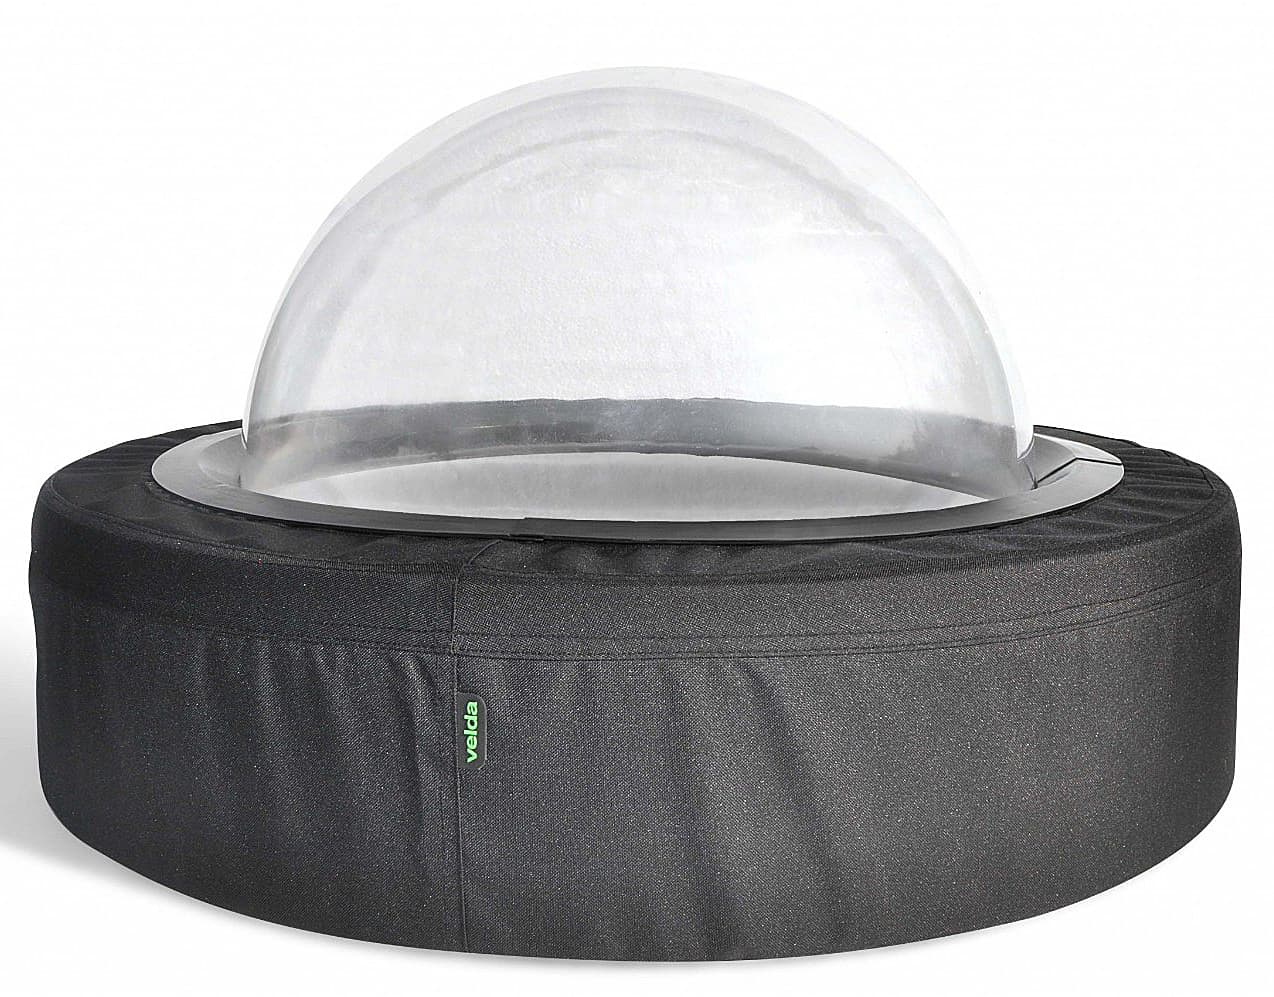 Velda Floating Fish Dome Acrylic Bubble